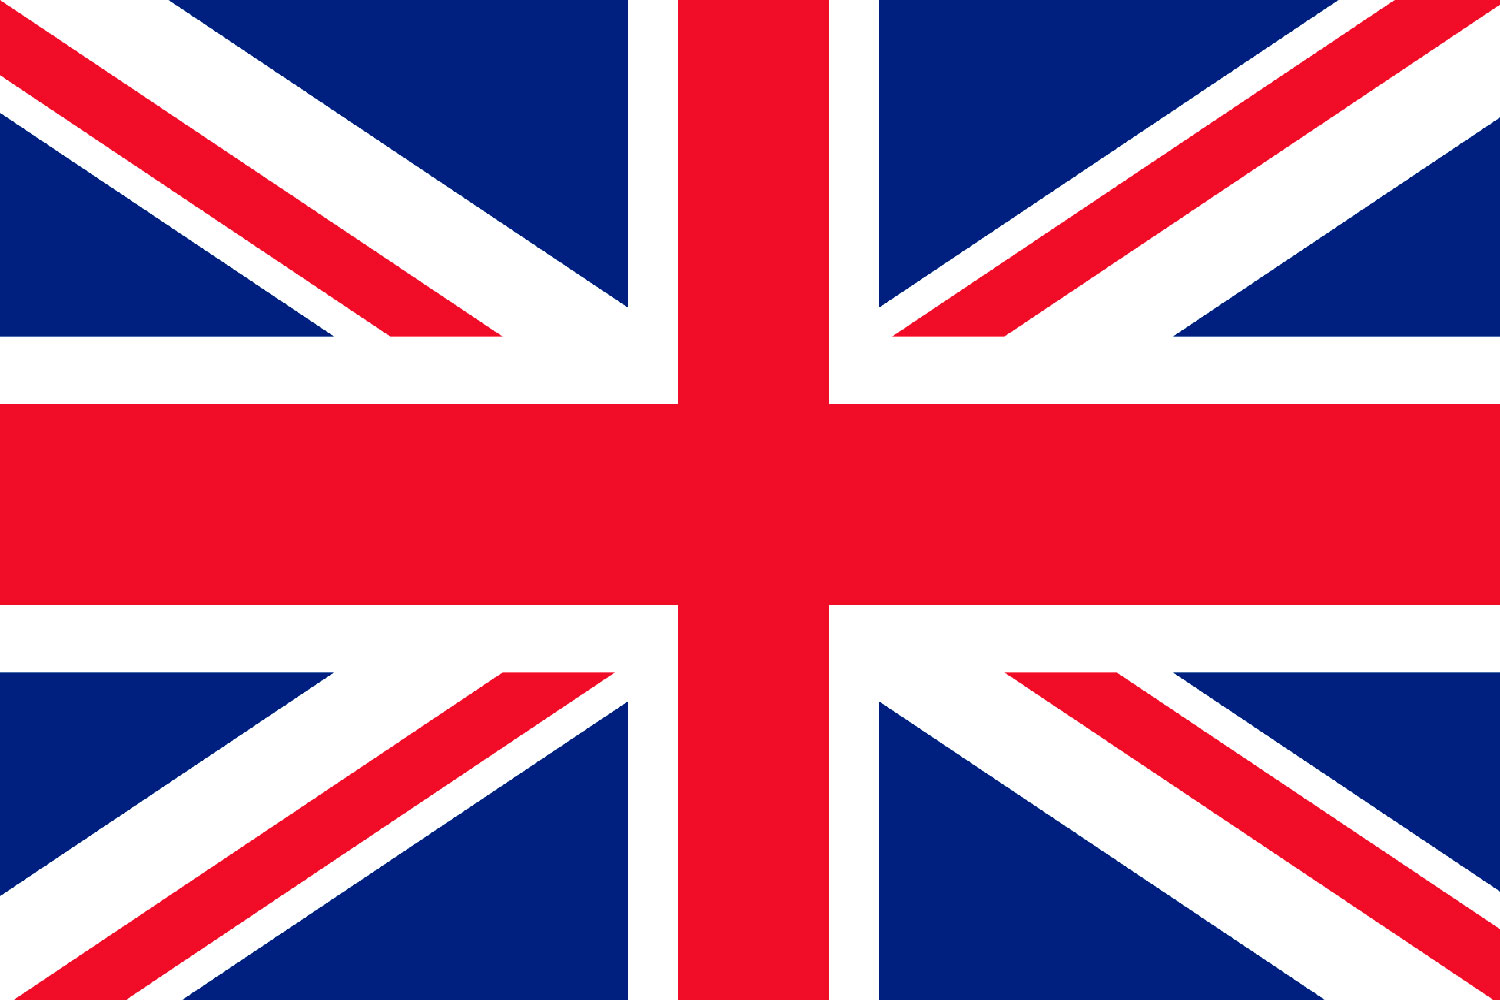 UK-flag-1500pxl.jpg